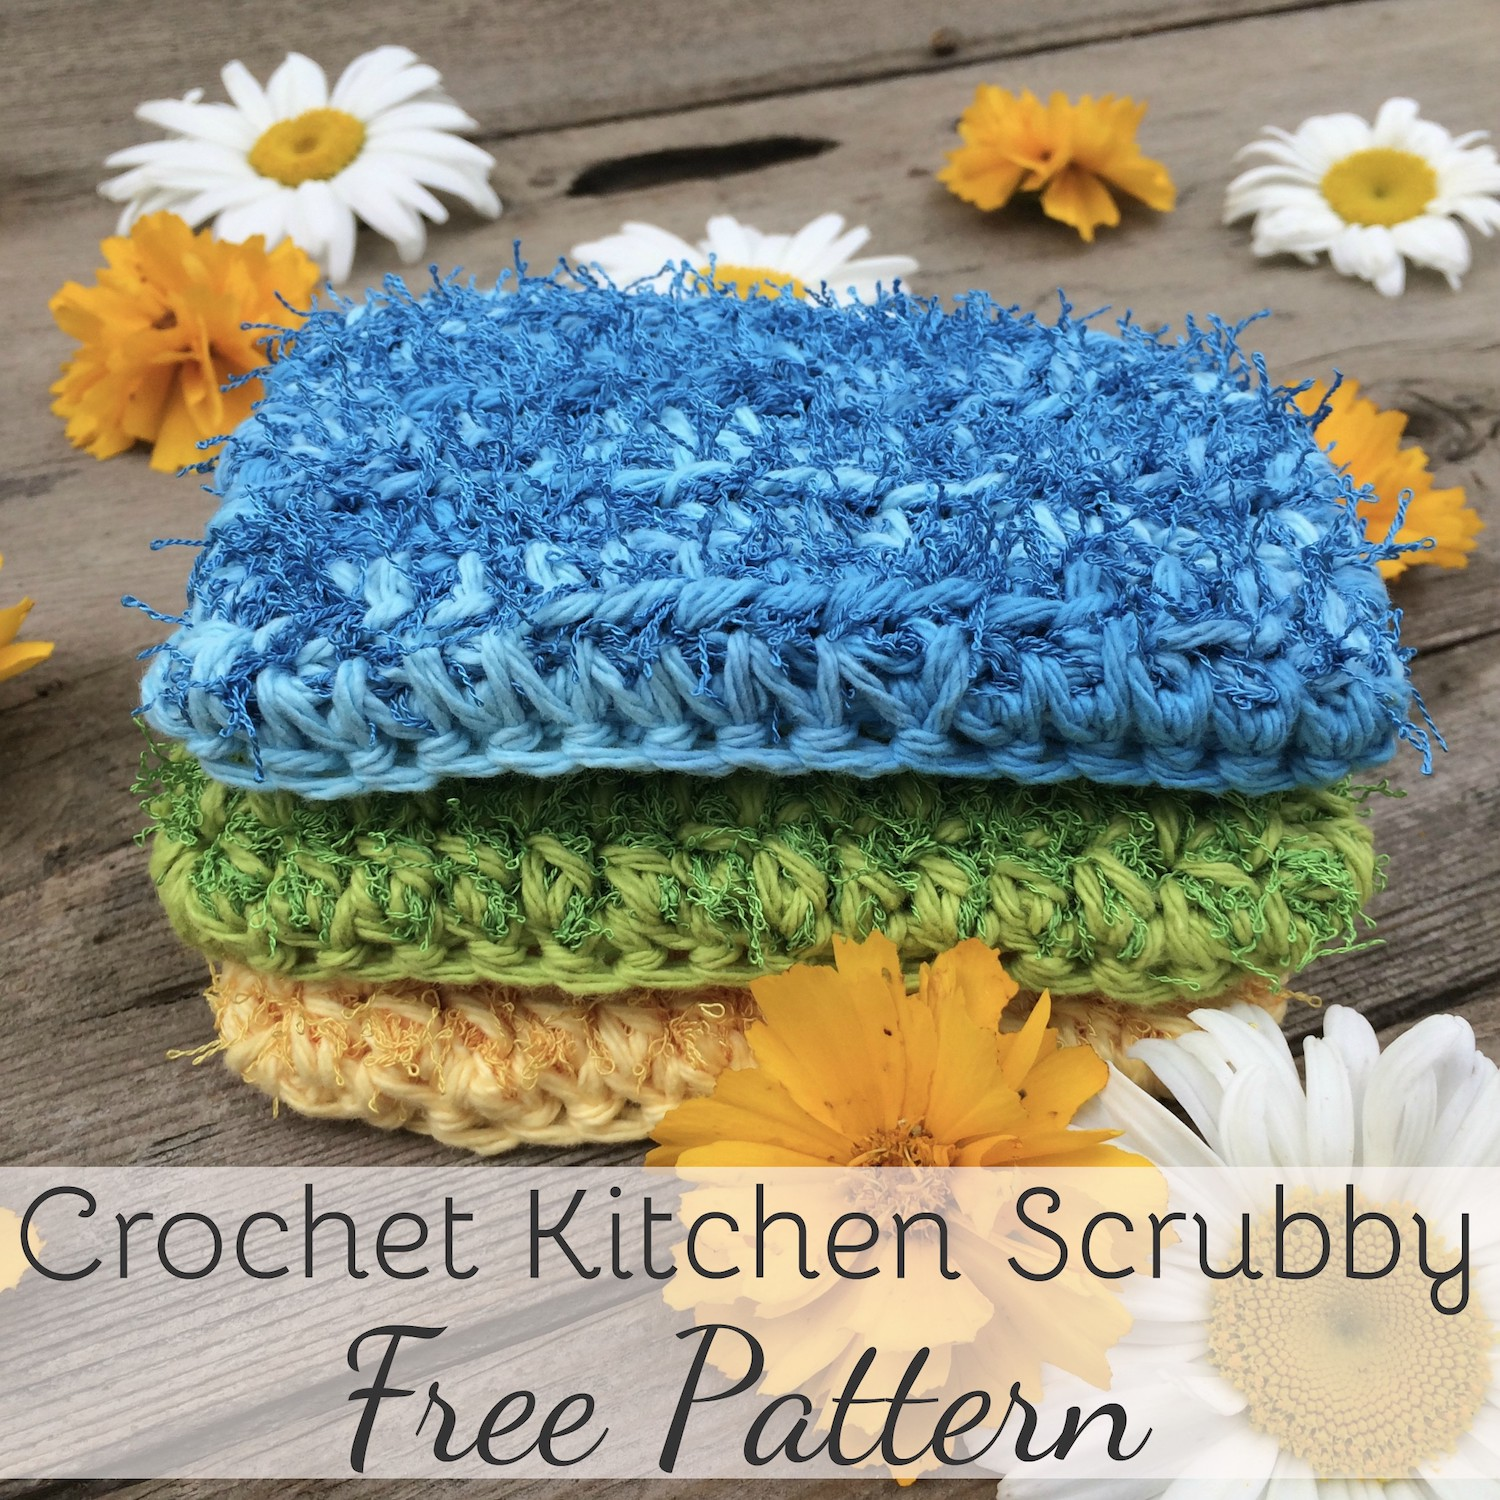 Crochet Kitchen Scrubby Pattern: Quick and easy pattern for beginners!